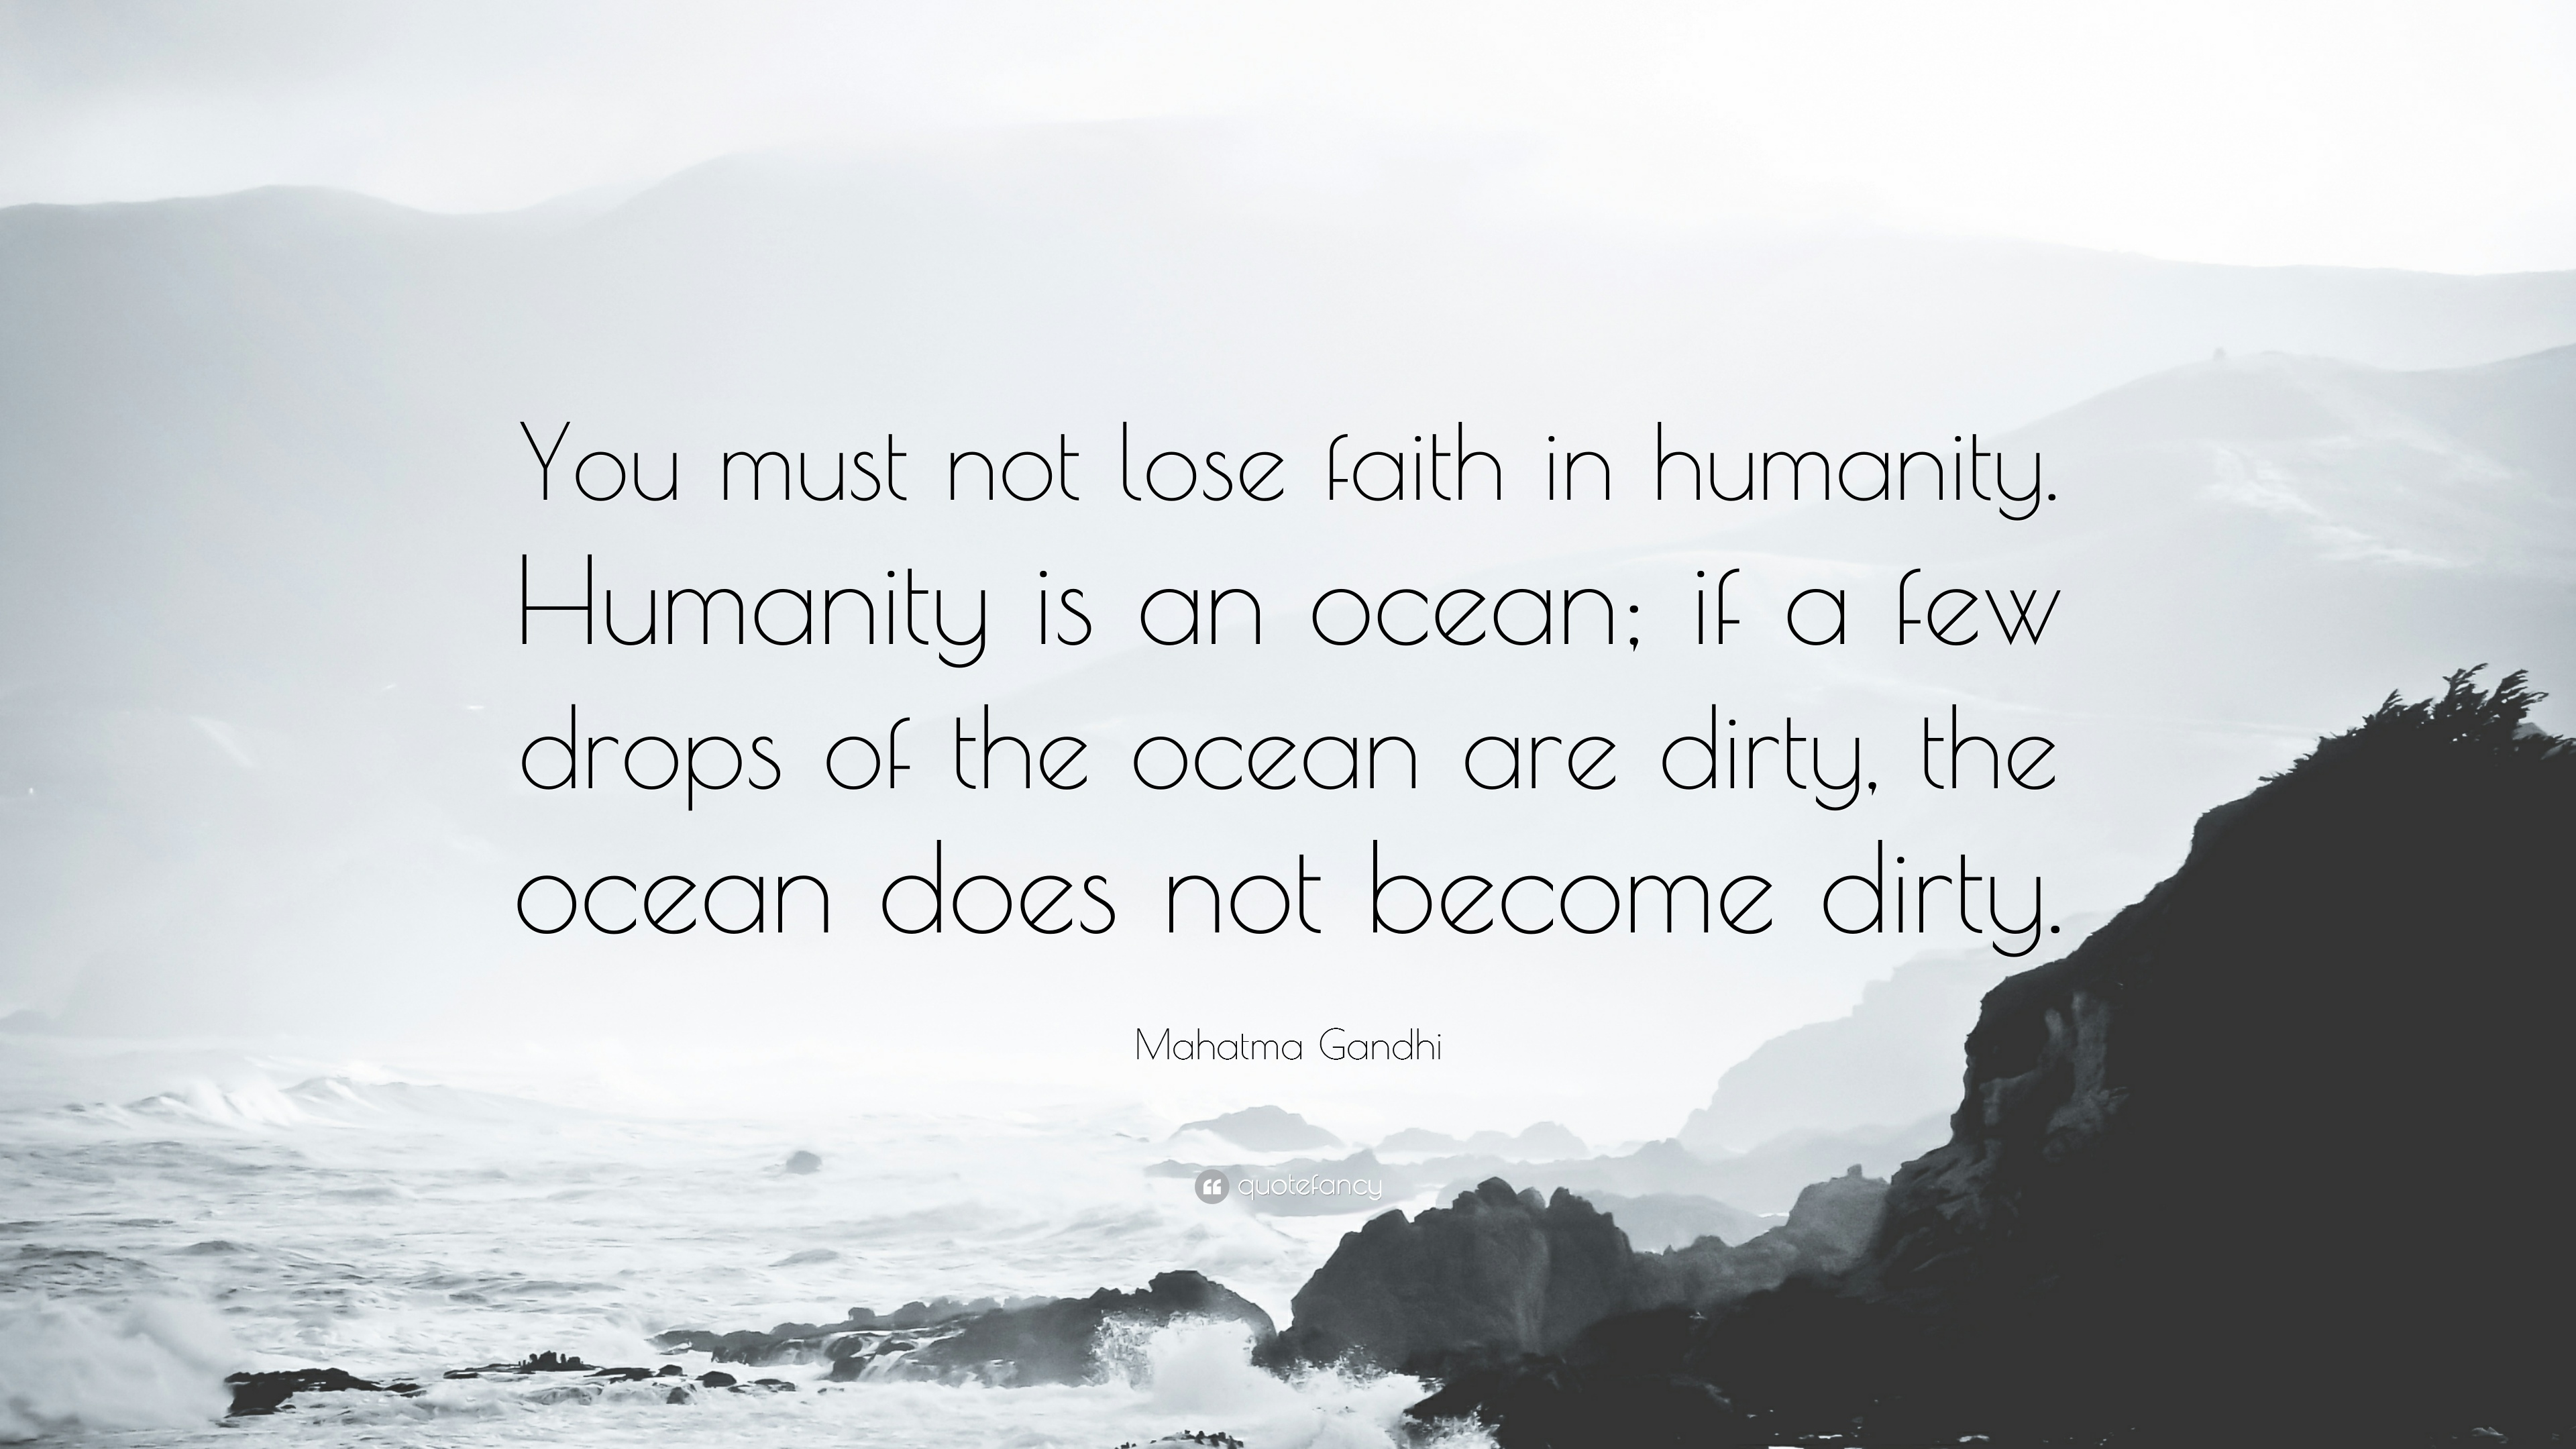 Quotes About Hope: U201cYou Must Not Lose Faith In Humanity. Humanity Is An